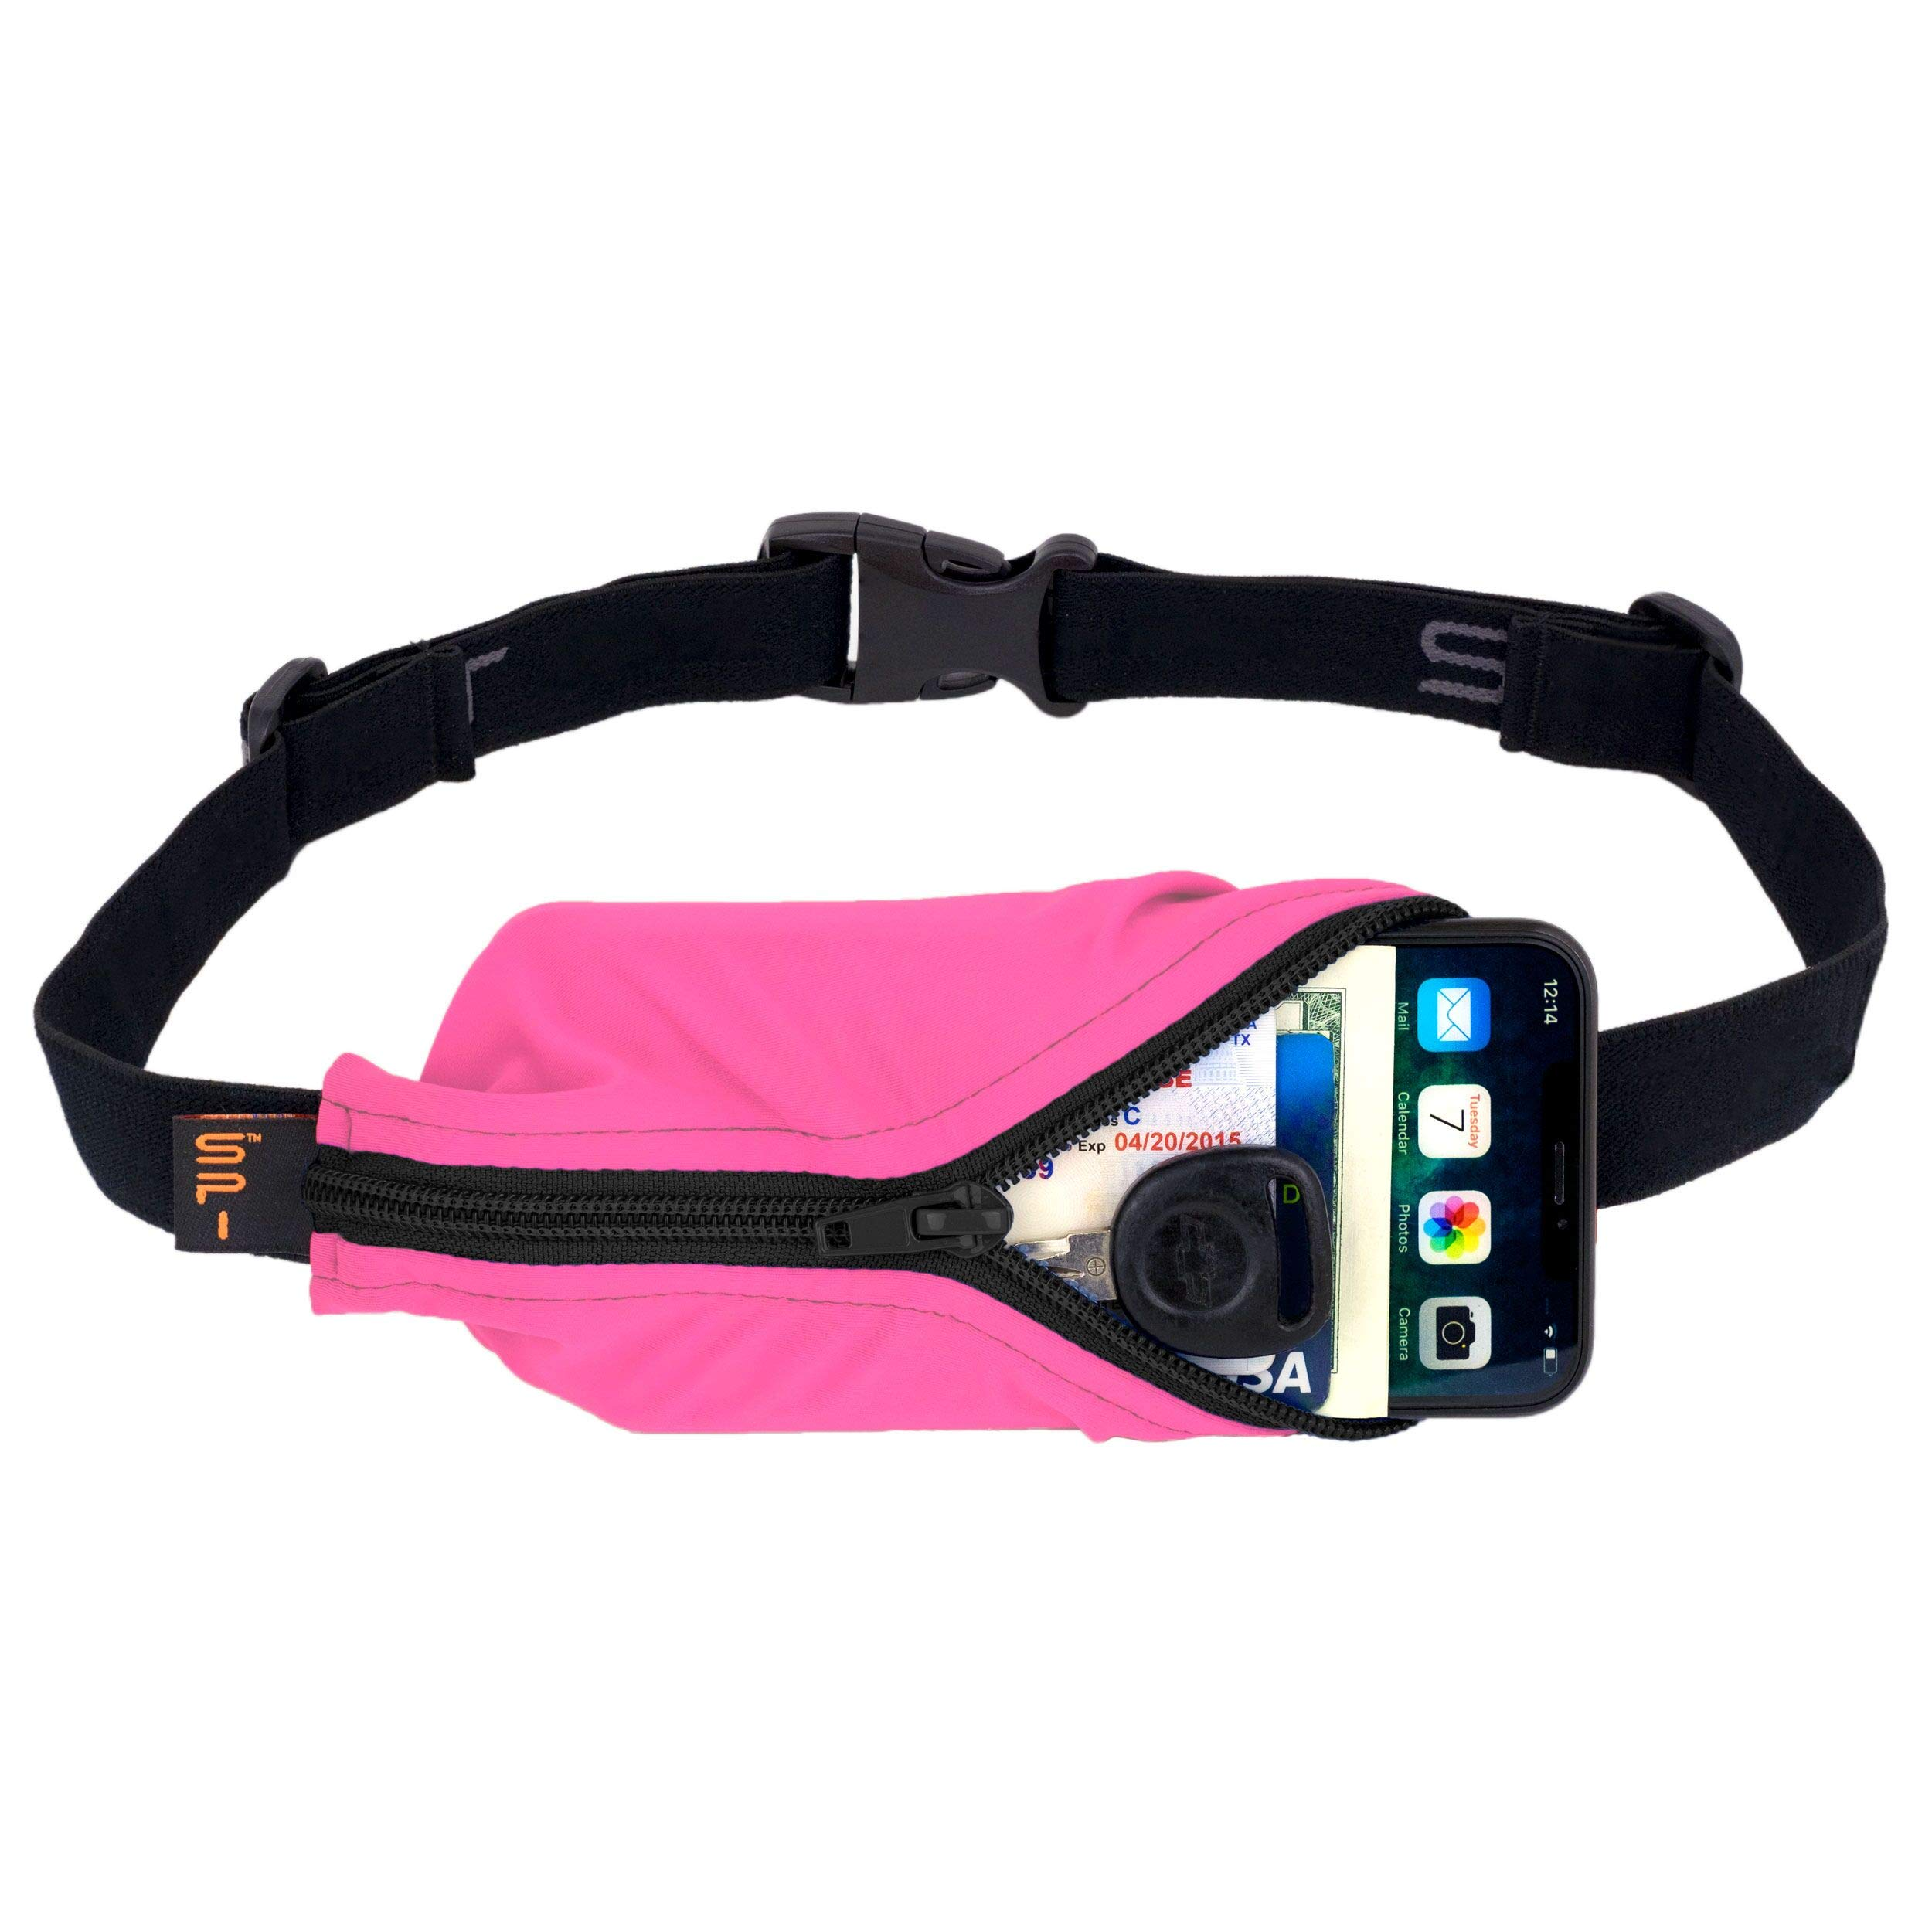 SPIbelt Sports/Running Belt: Original - No-Bounce Running Belt for Runners, Athletes and Adventurers - Fits iPhone 6 and Other Large Phones, Hot Pink by SPIbelt